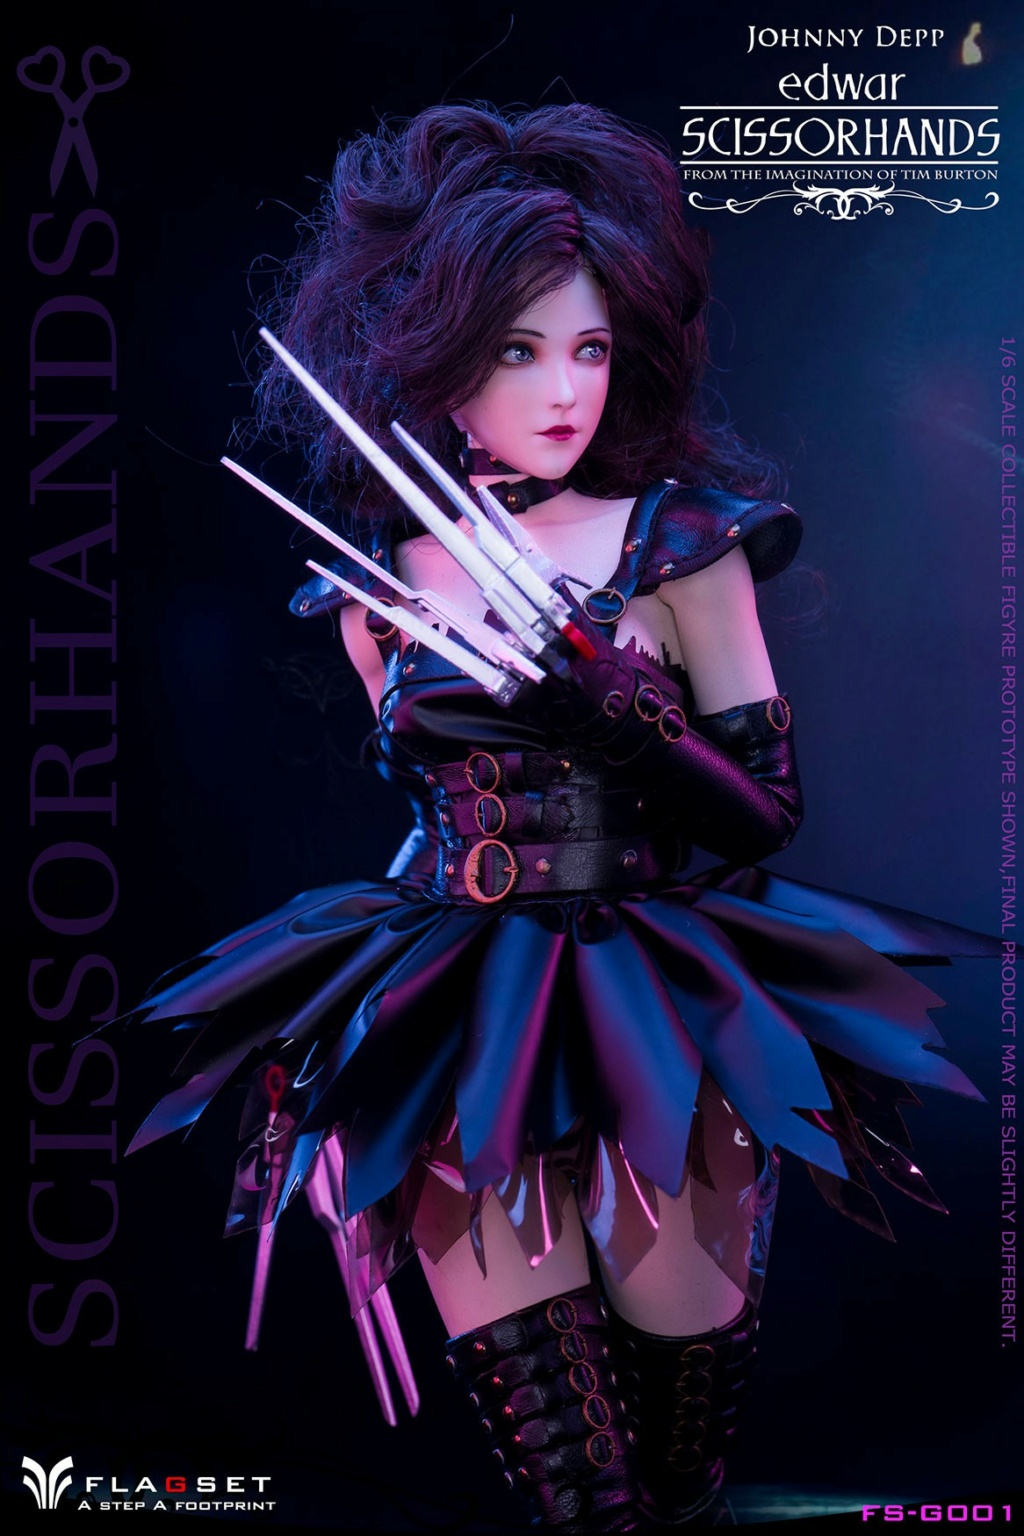 Stylized - NEW PRODUCT: Flagset: 1/6 Edwar Scissorhands (FS-G001#) (NOT A MISSPELLING, AND NOT WHAT YOU THINK) 23522313